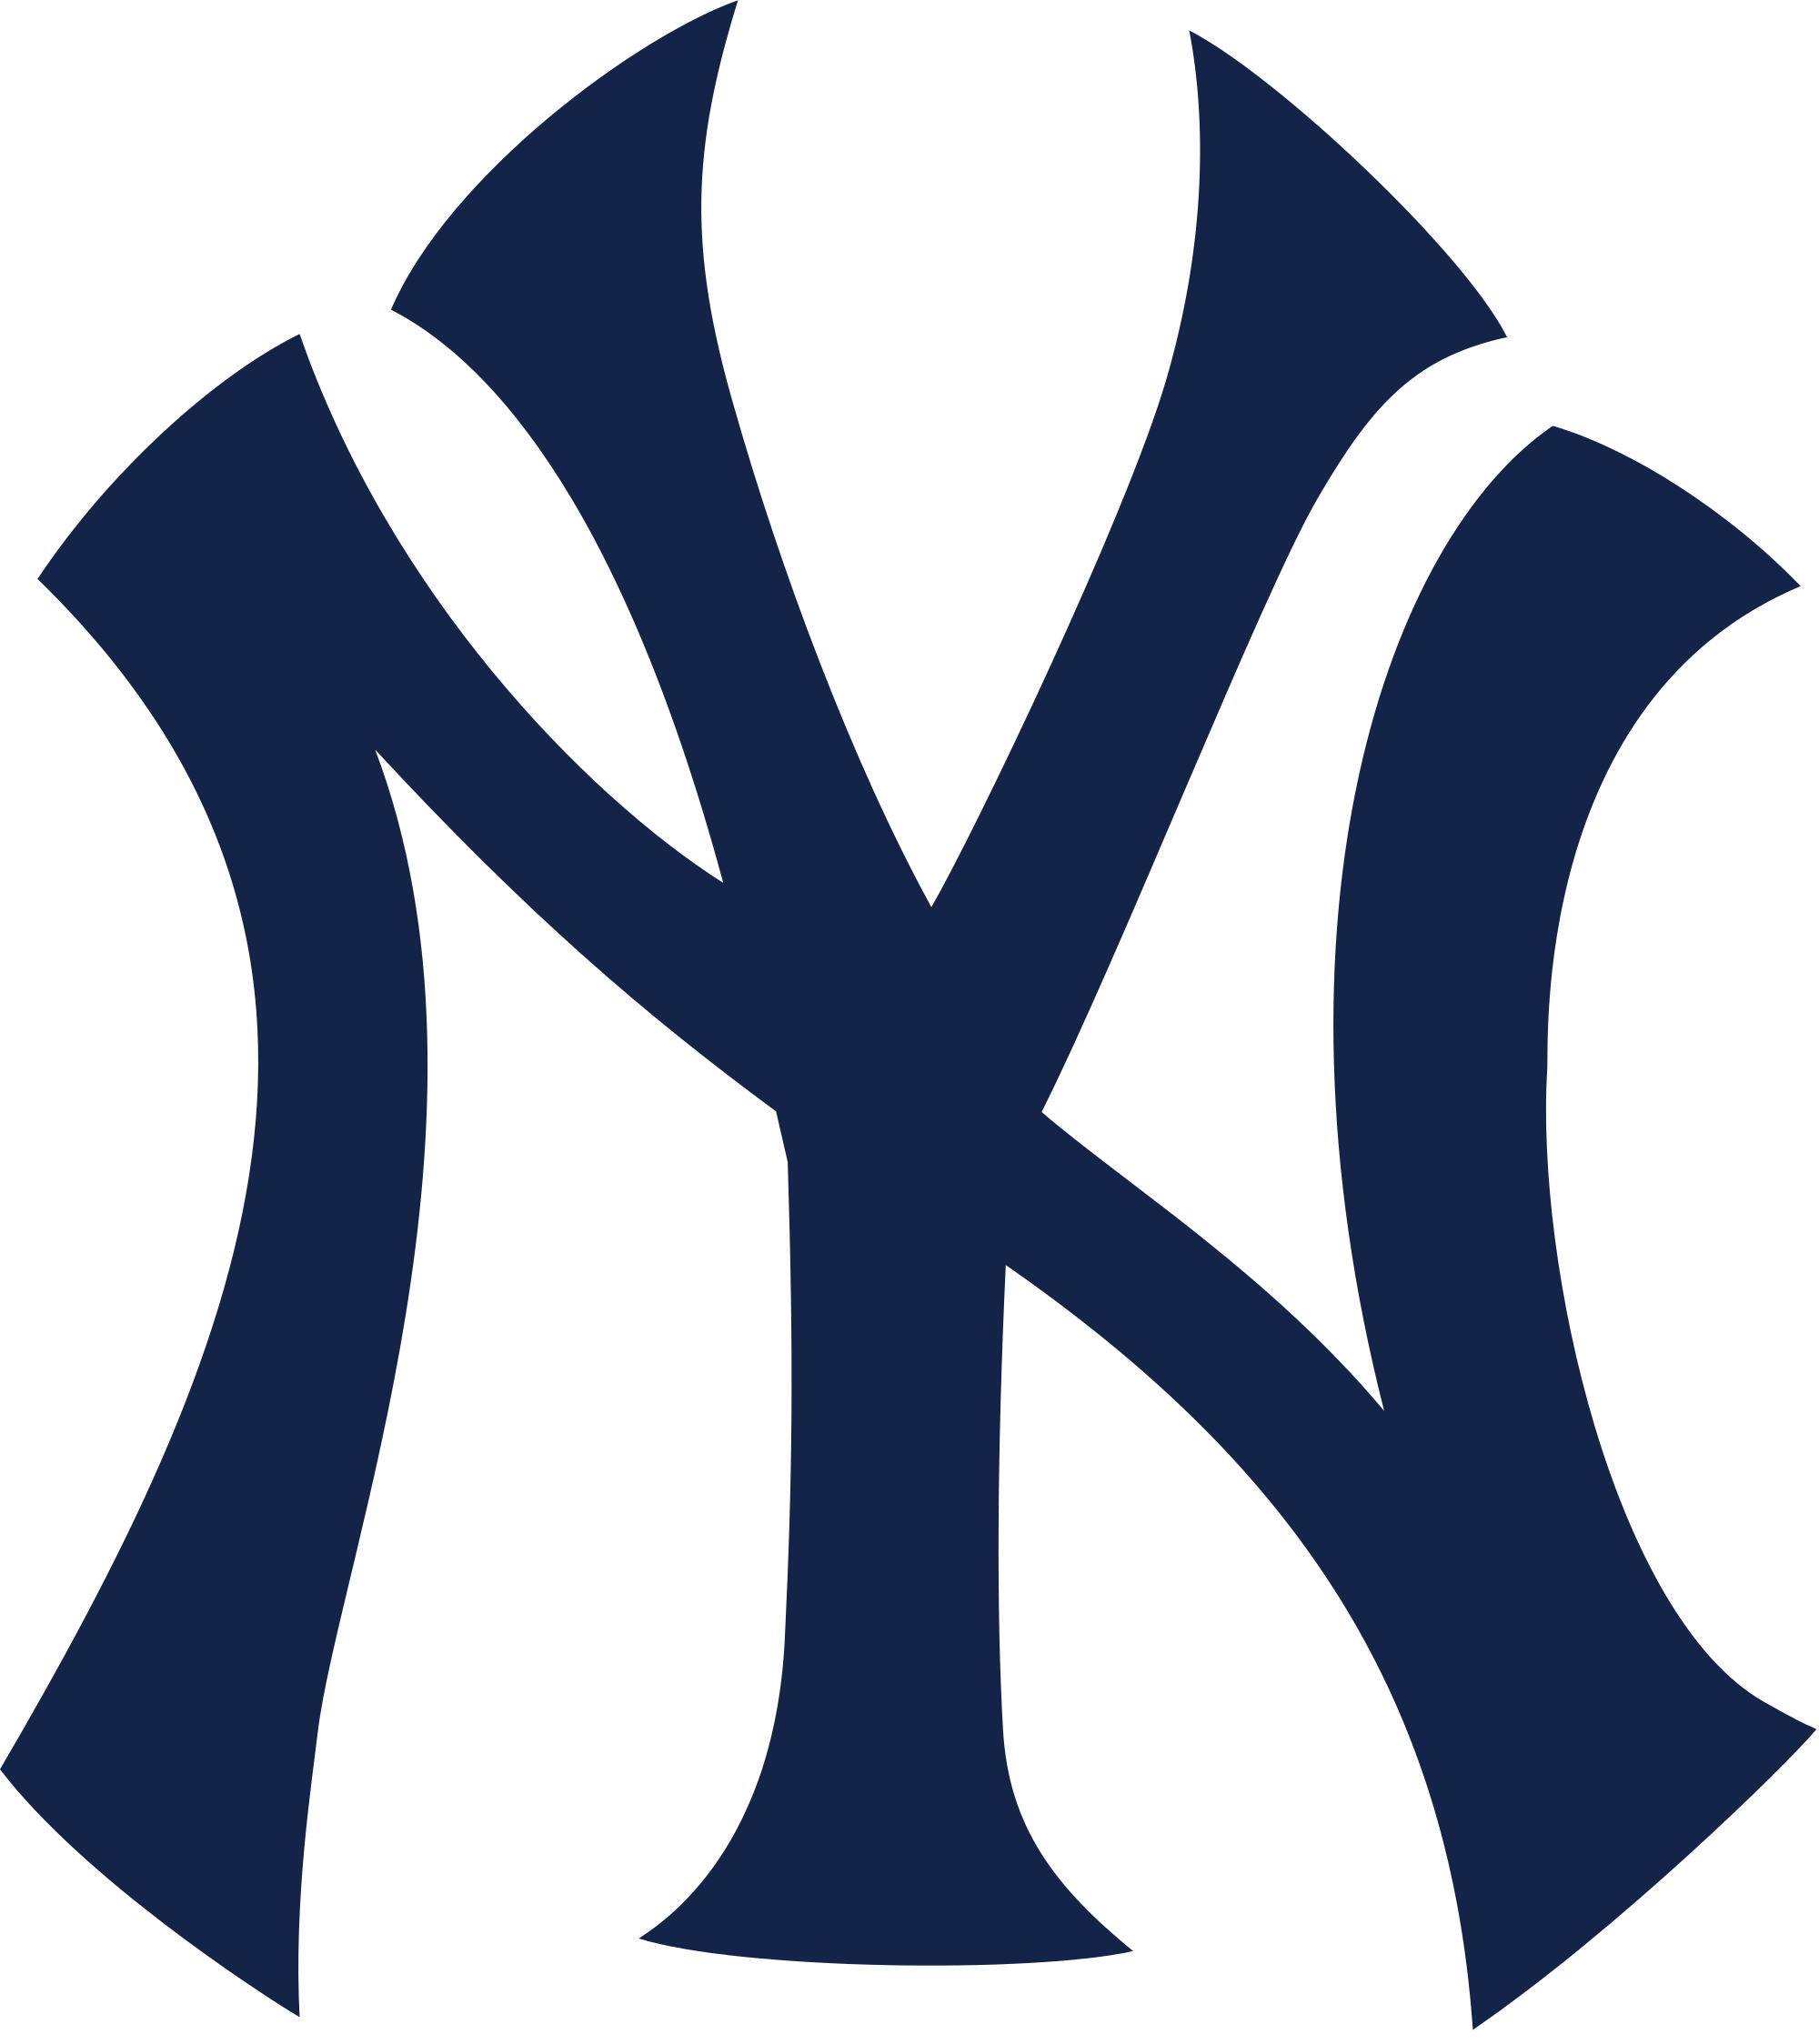 New york yankees symbol clipart image royalty free New York Yankees Logo NY transparent PNG - StickPNG image royalty free